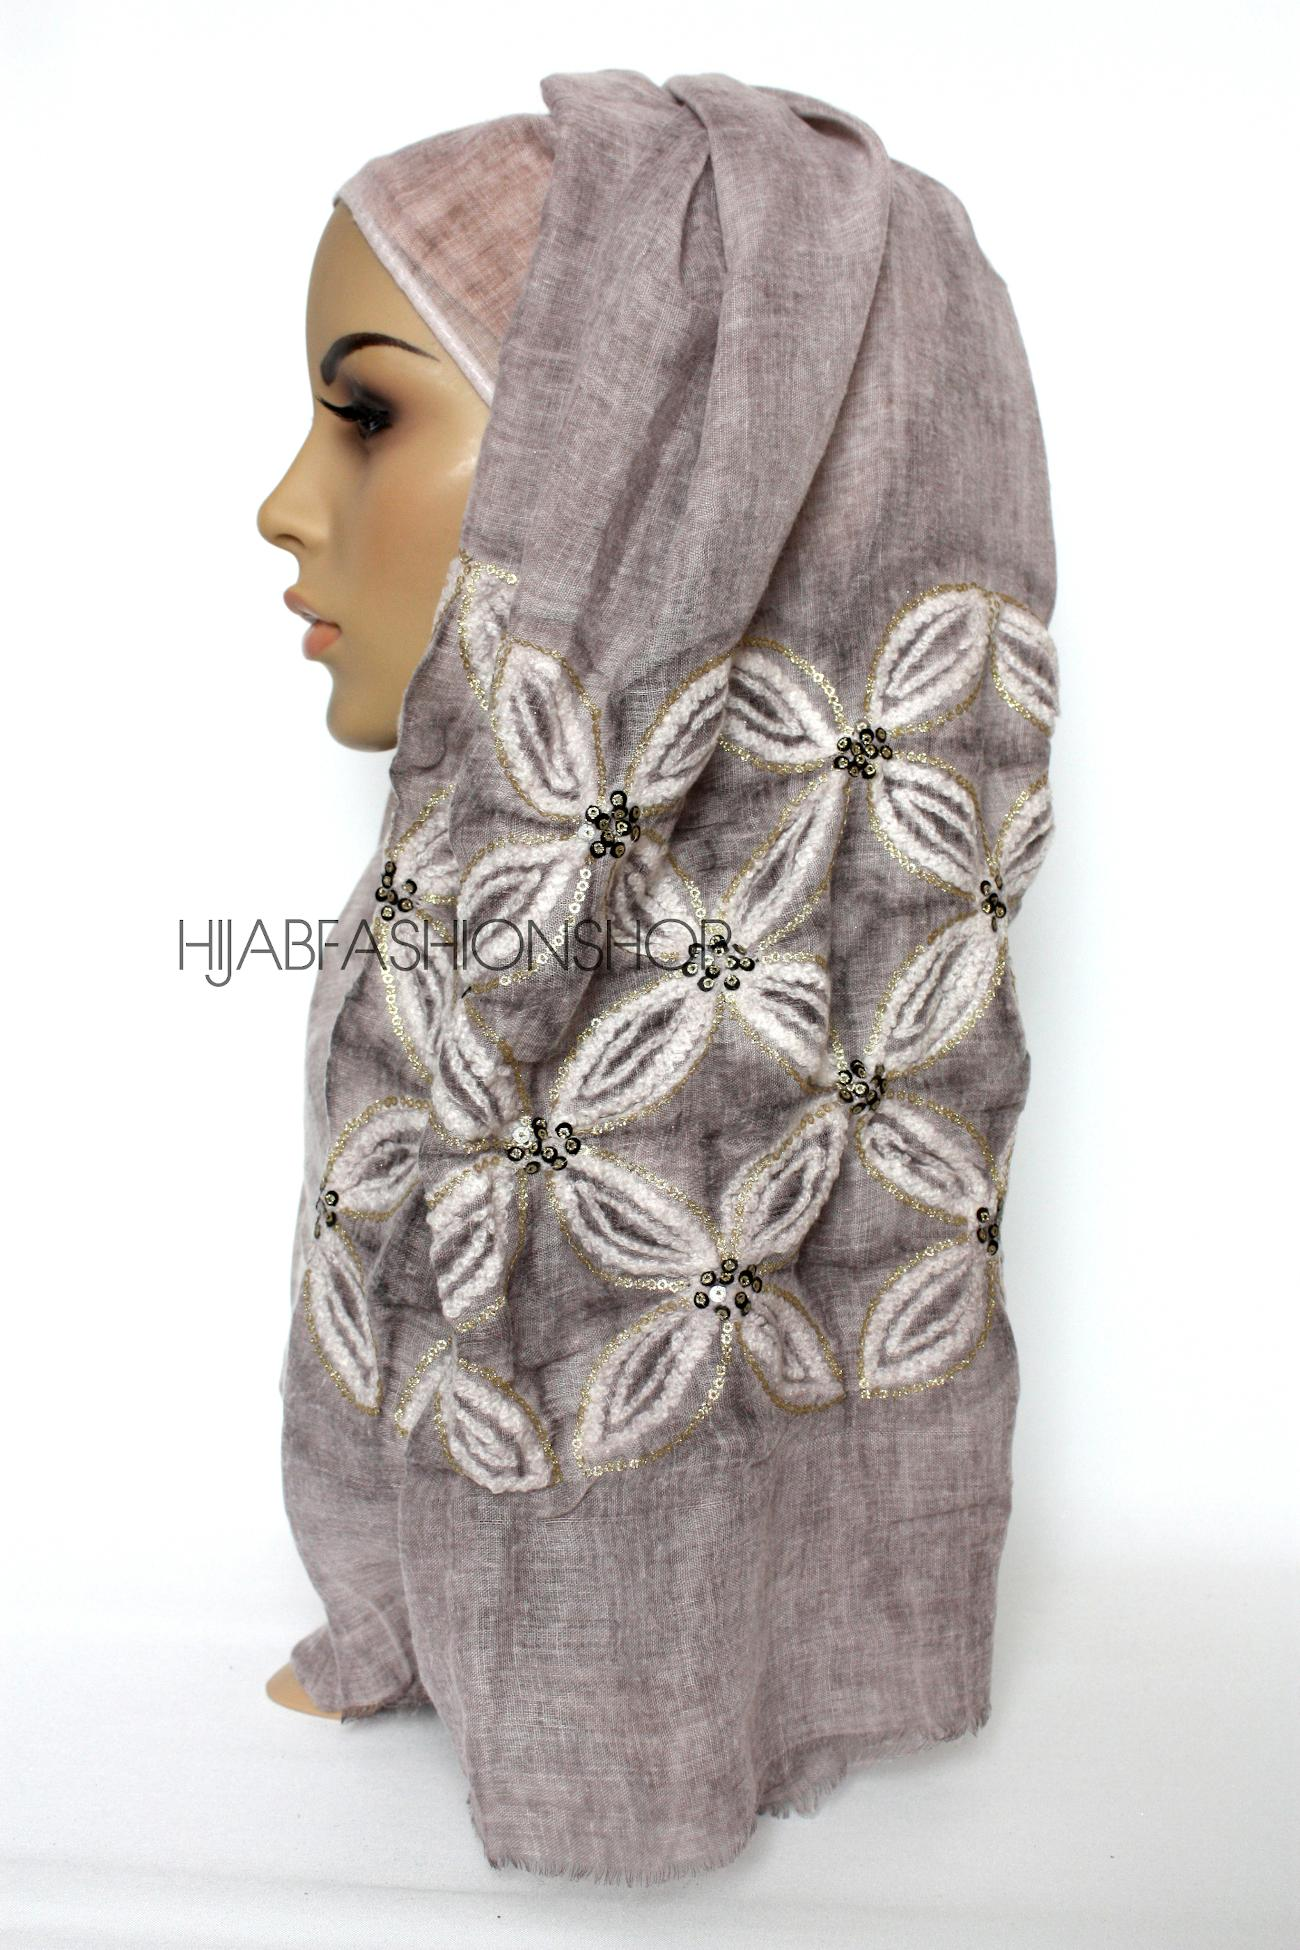 dusky mauve linen look hijab with lilies embroidery and sequins side view